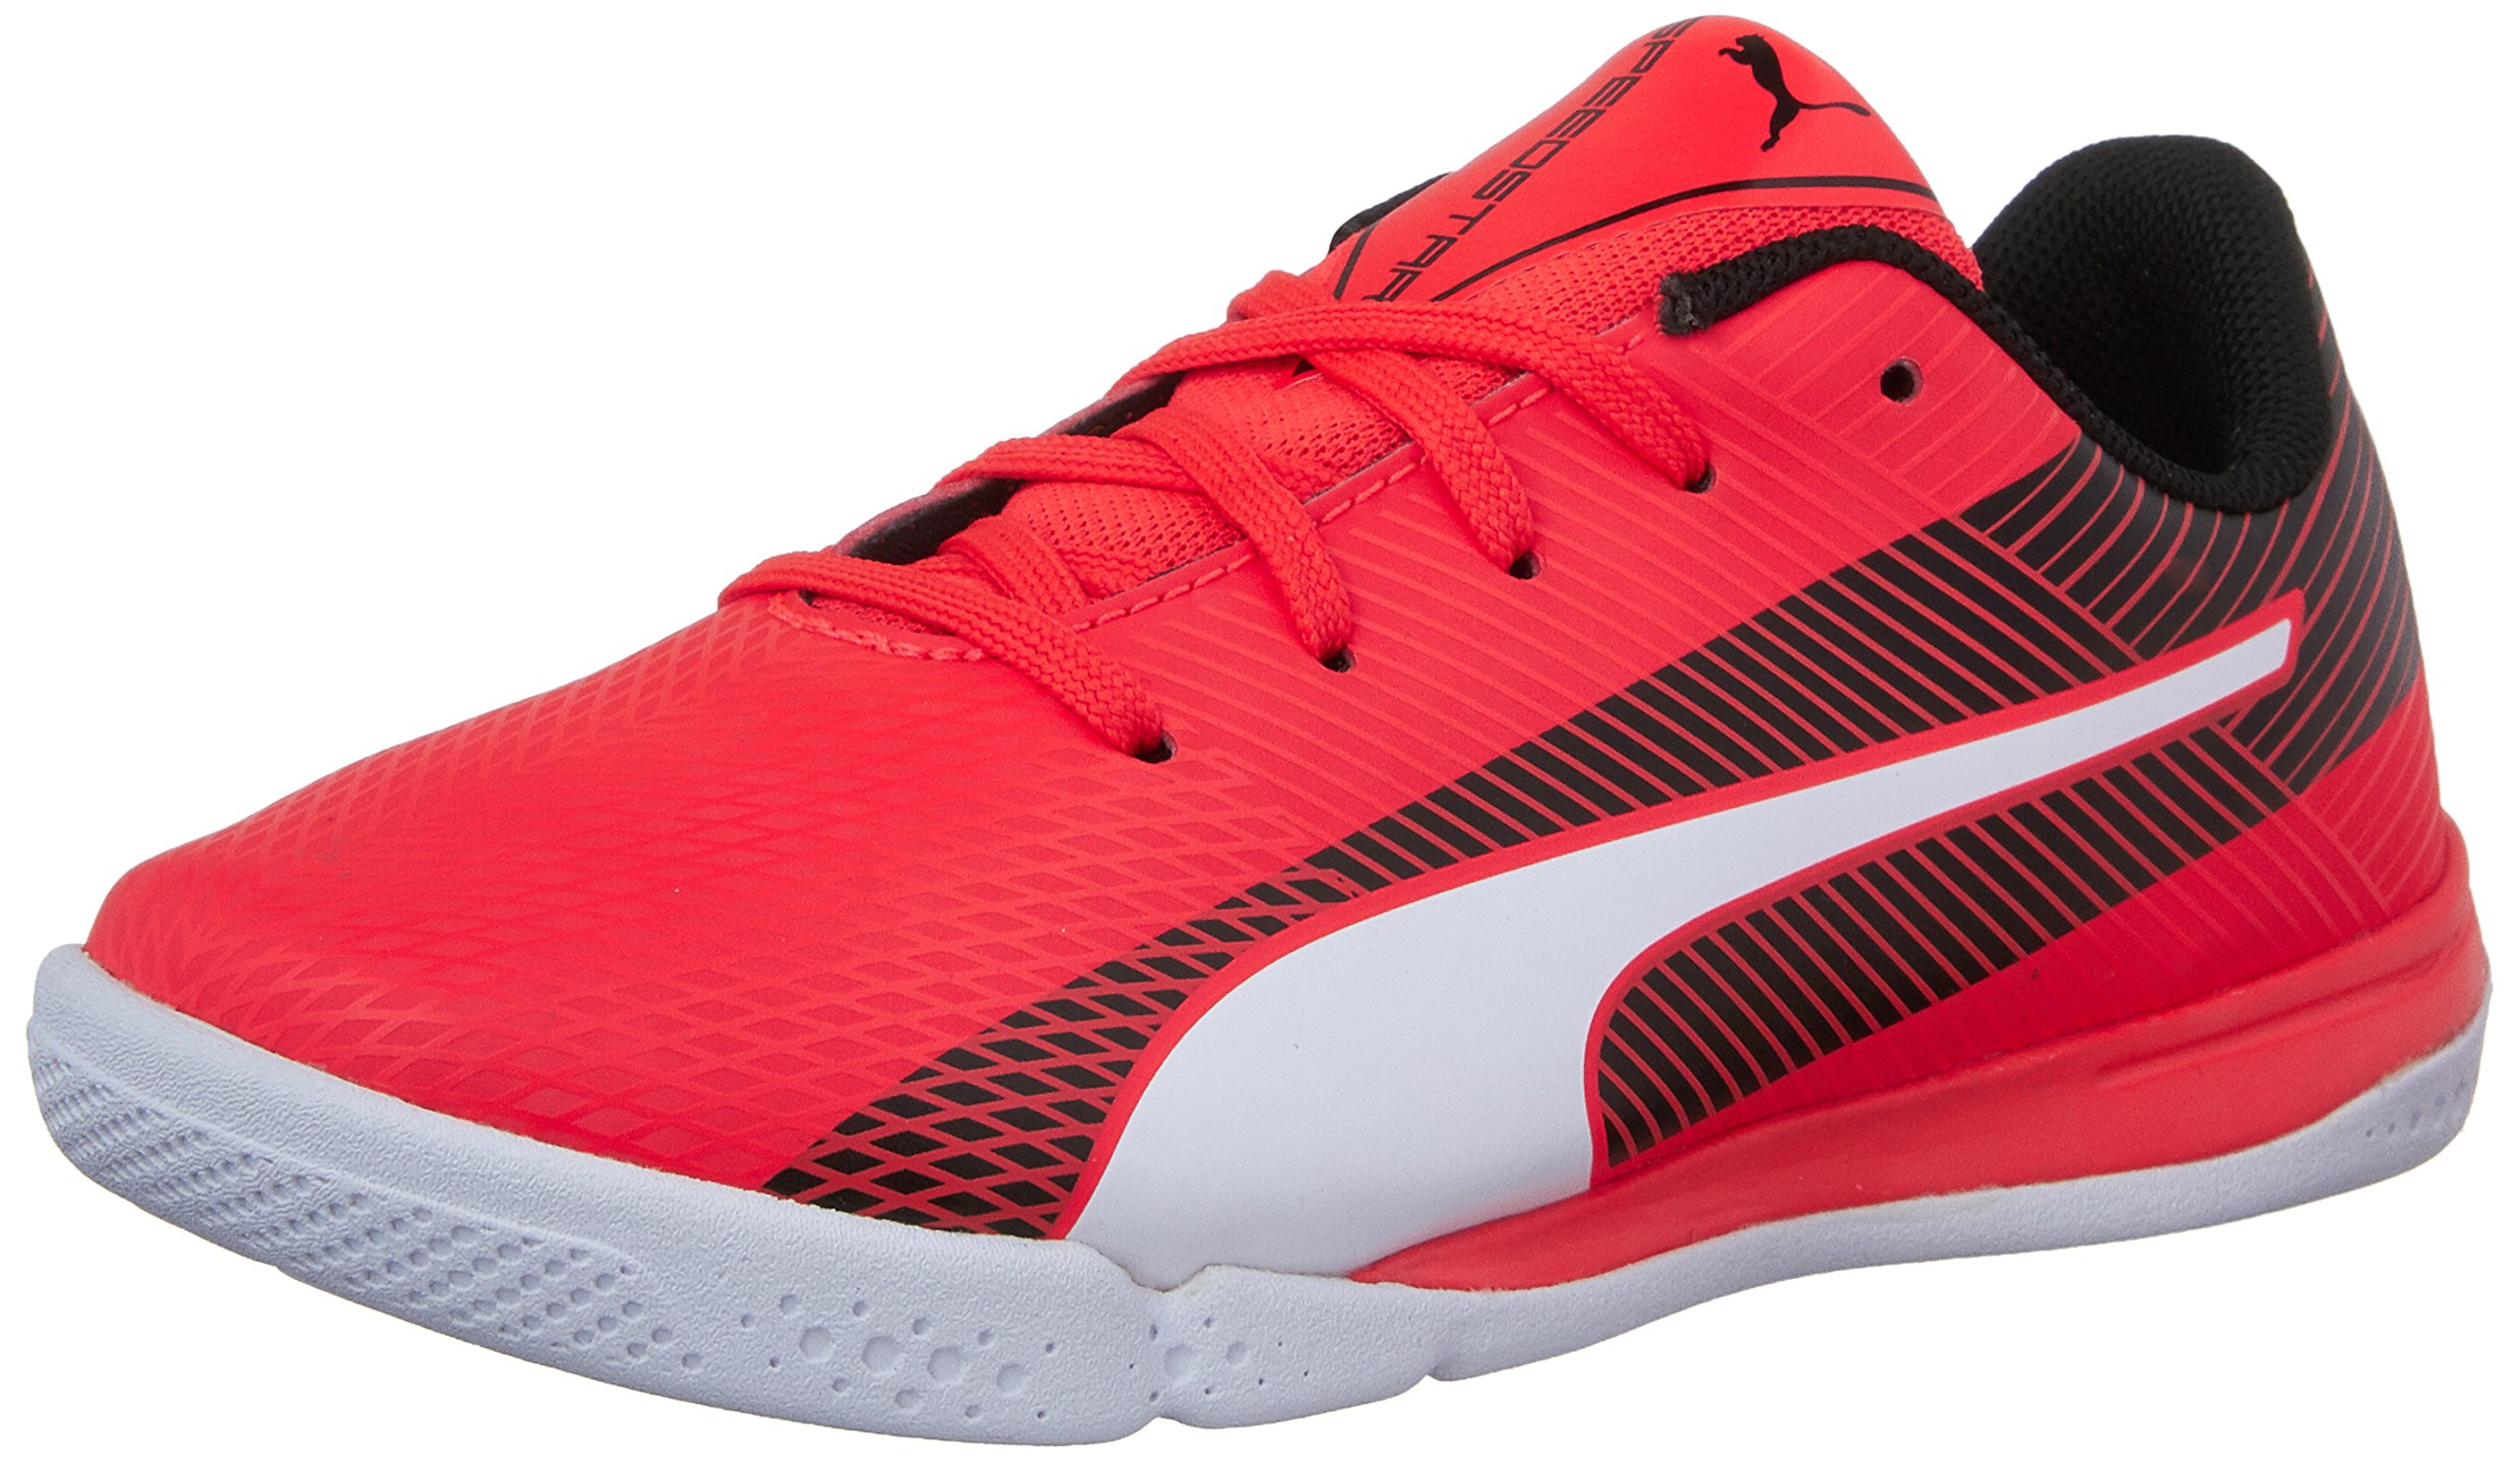 PUMA Evospeed Star S Jr Skate Shoe Red Blast-White-Black 13 M US Little Kid